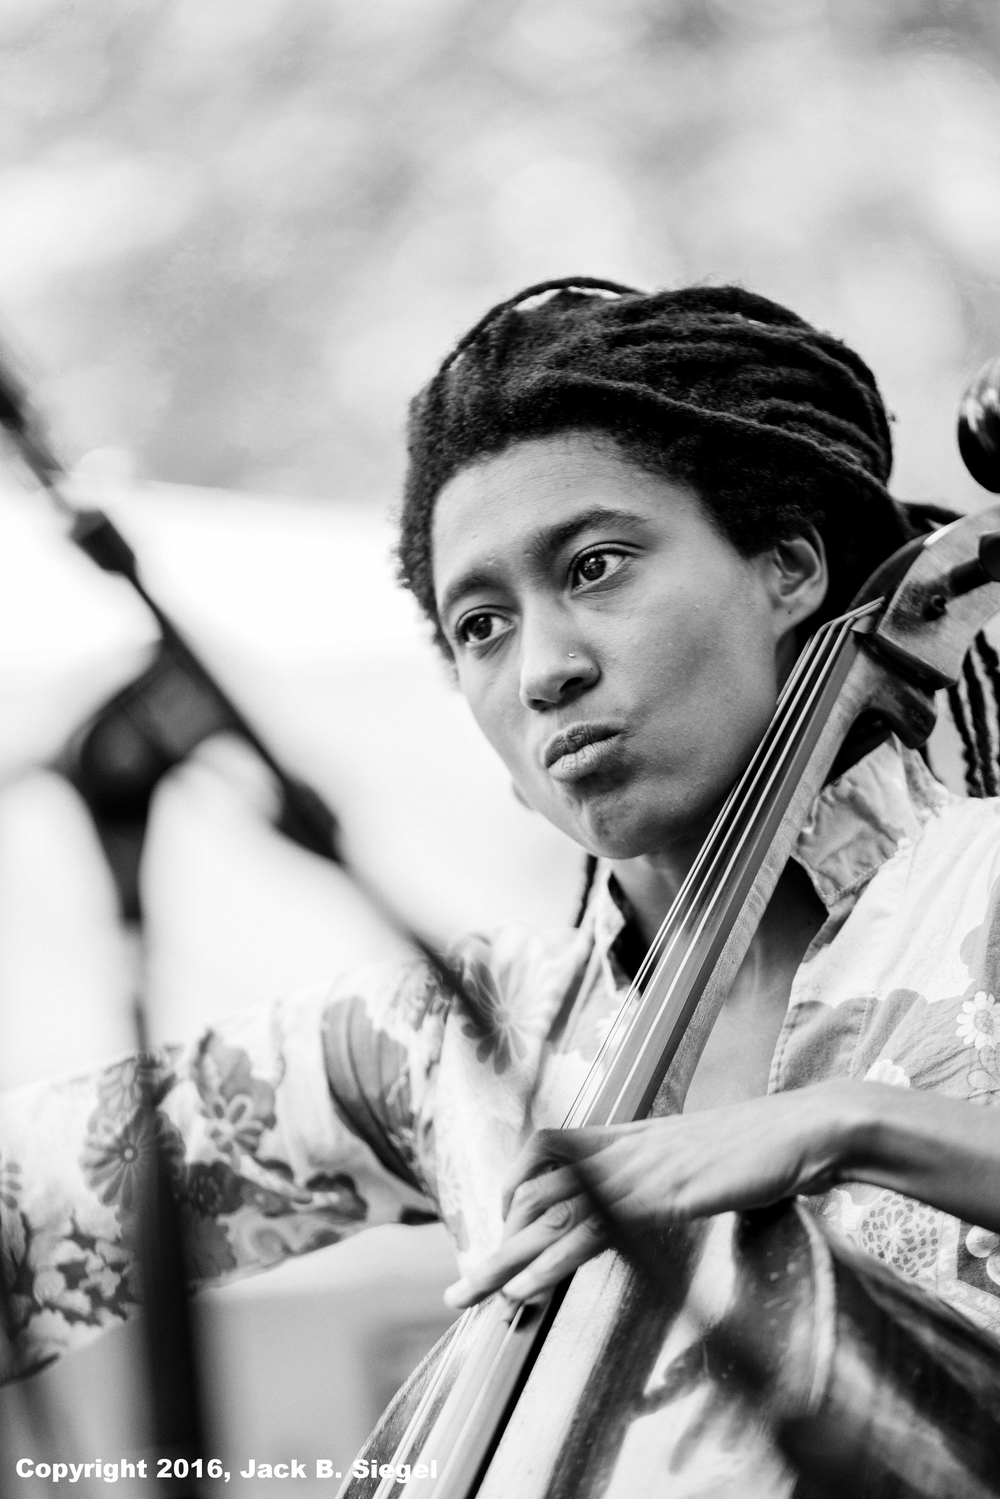 Intensity: Tomeka Reid on Cello